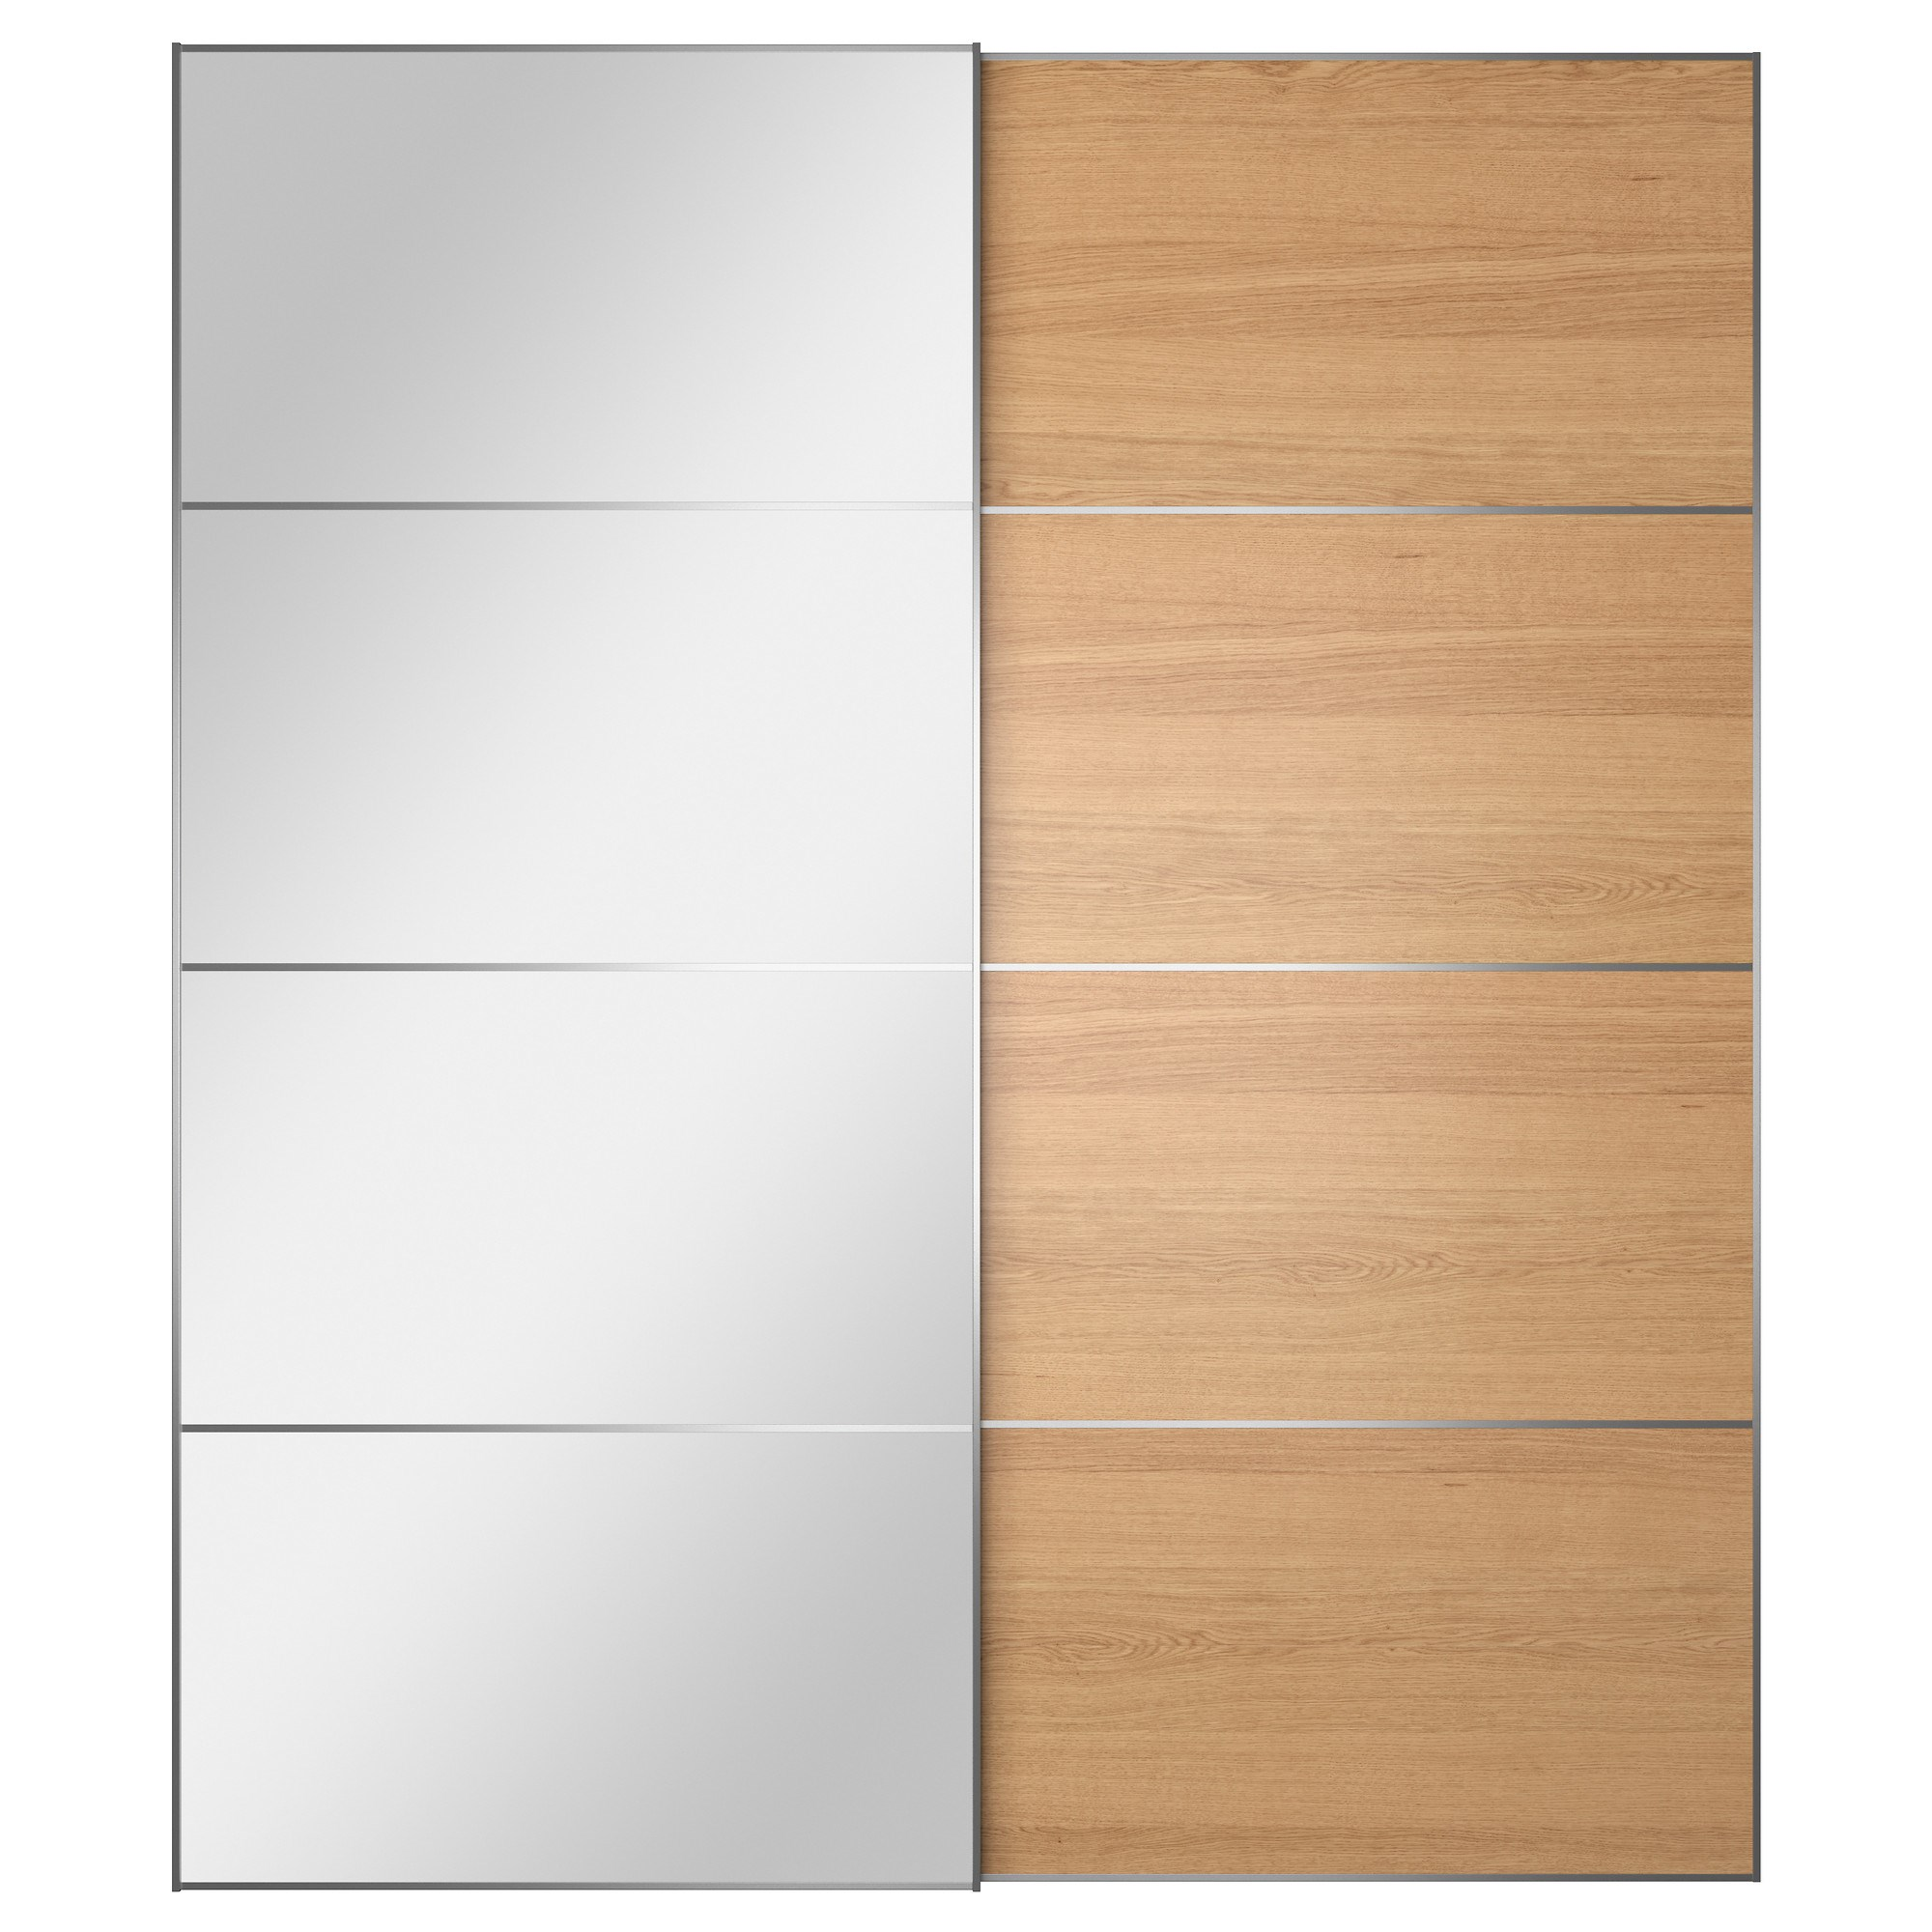 AULI/ILSENG pair of sliding doors oak veneer/mirror 200x236 cm ...